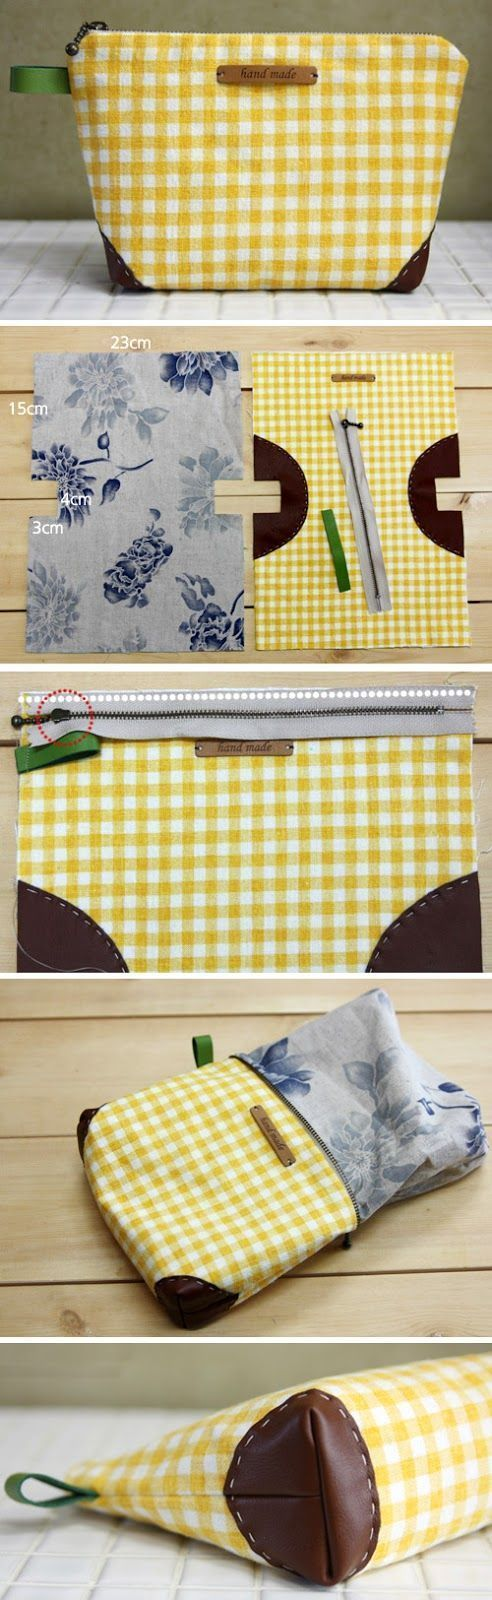 Simple Zipper Cosmetic Bag Pattern + ... - # Corner #Easy #Pattern ... - Kochen #bagpatterns